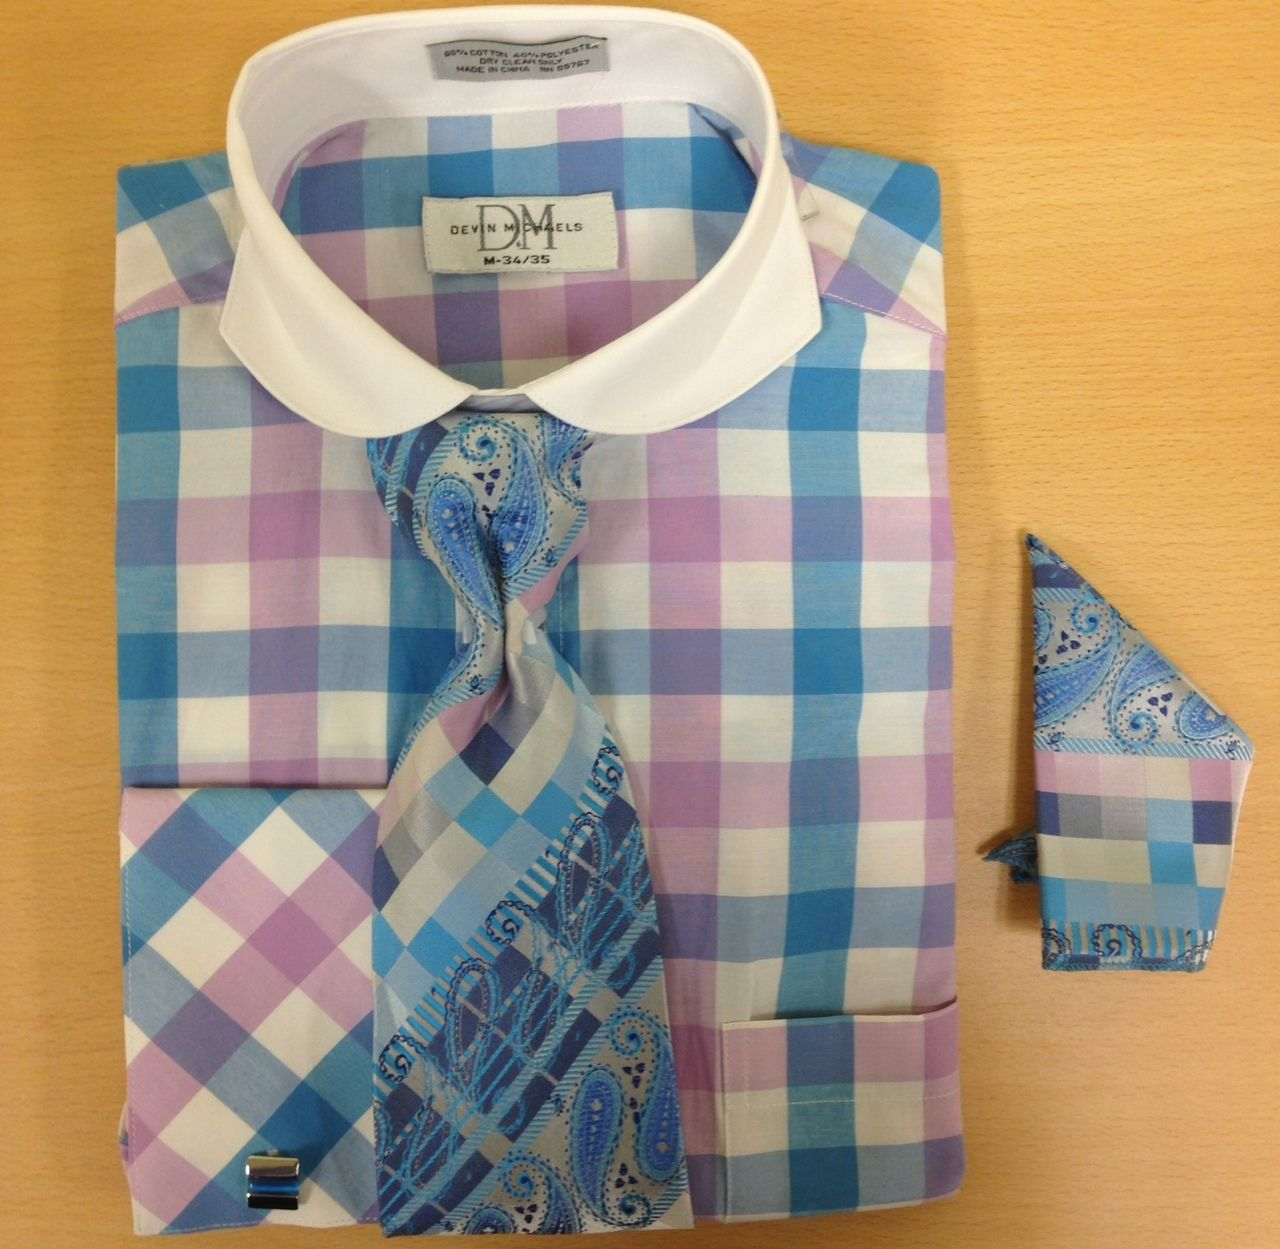 Men's Fashion Large Checked Squares Cufflink Dress Shirt Set - Blue and Pink